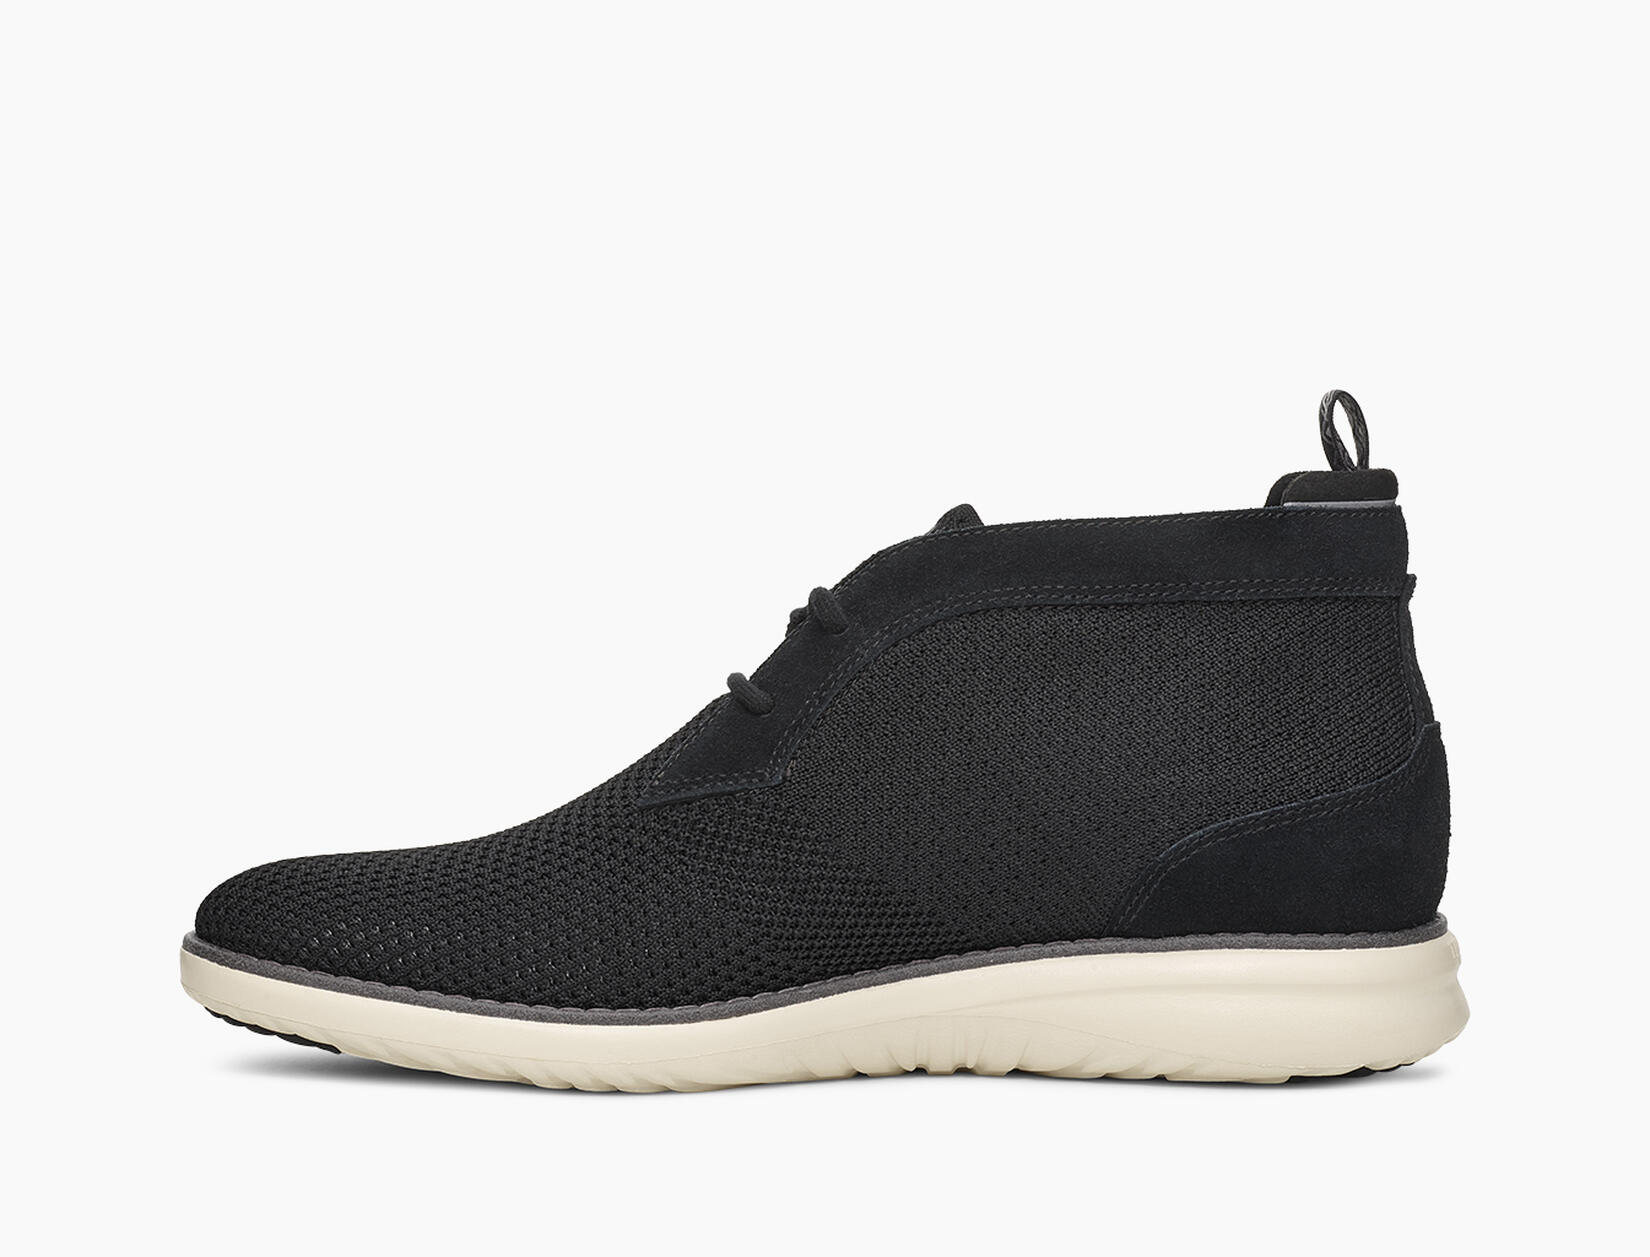 Union Hyperweave Chukka